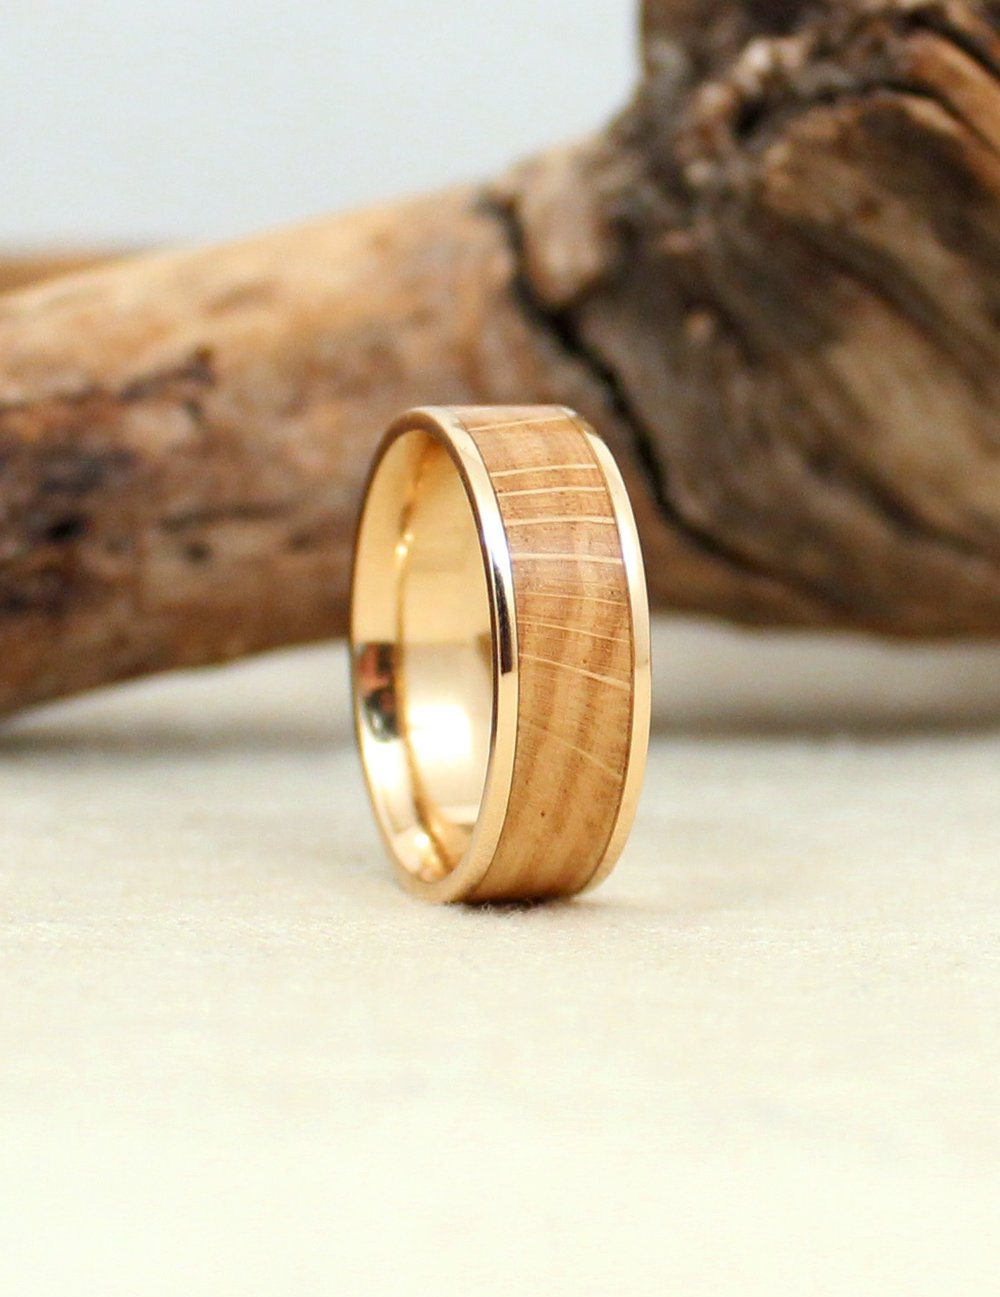 old rings ponderosa black and new growth filthy oak burl listings spalted img wood